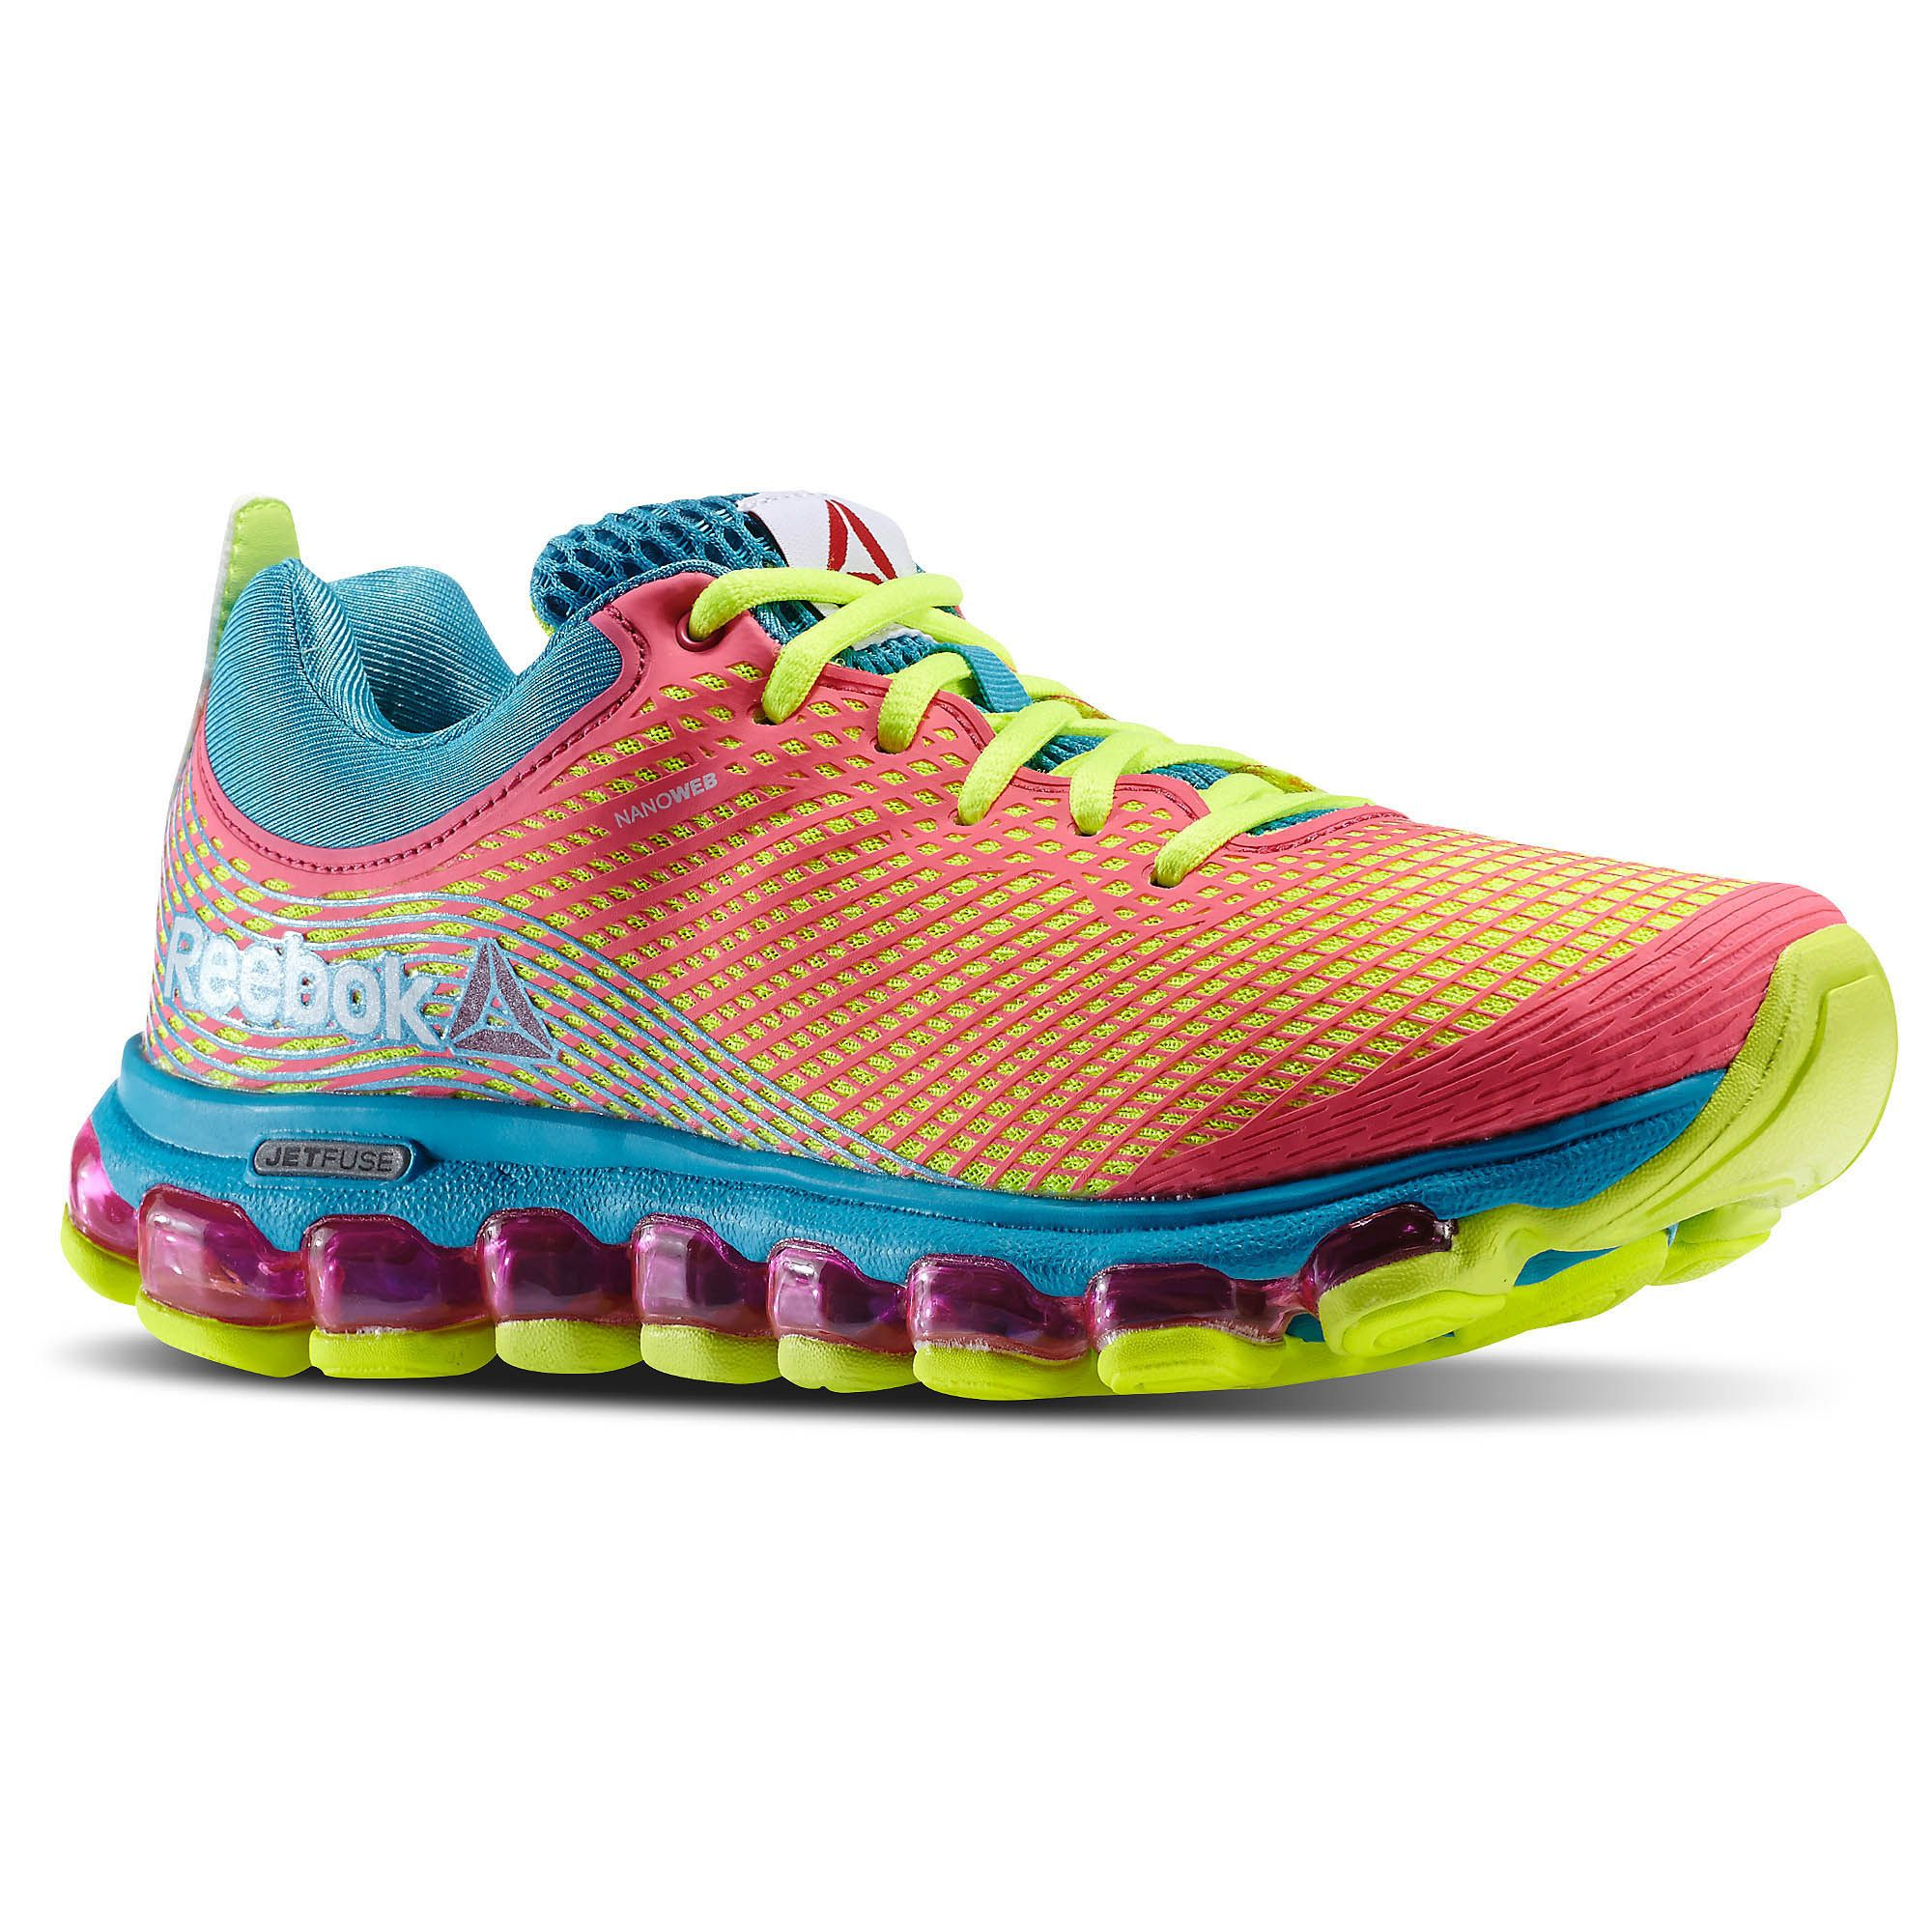 Reebok-running-shoes-and-sportsshoes-for-women (17)